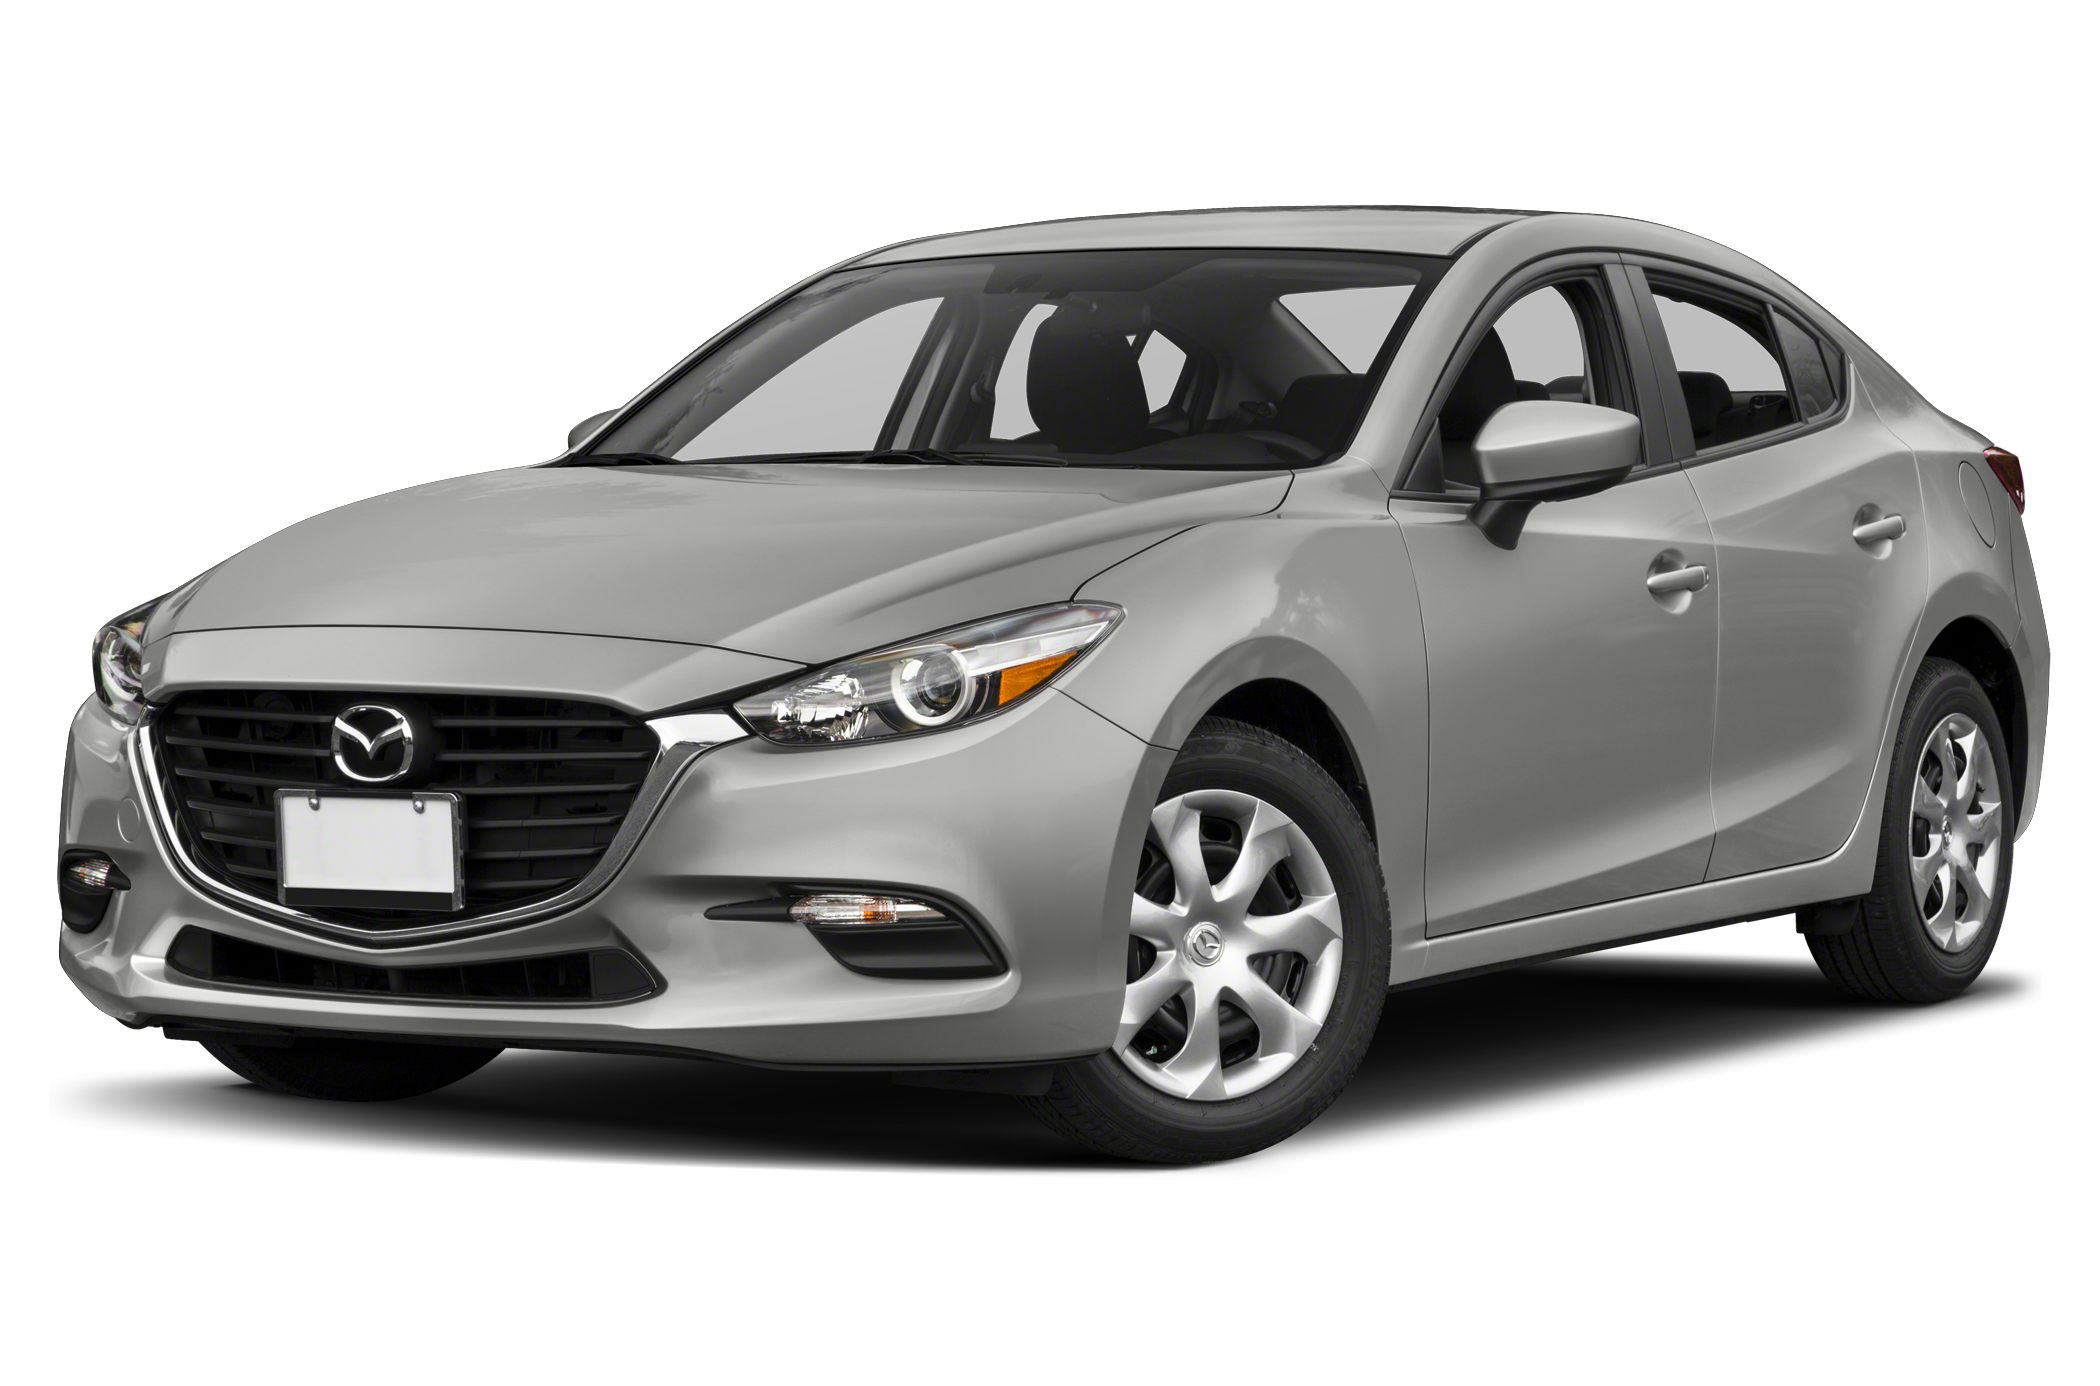 Sport 4dr Sedan 2017 Mazda Mazda3 Photos